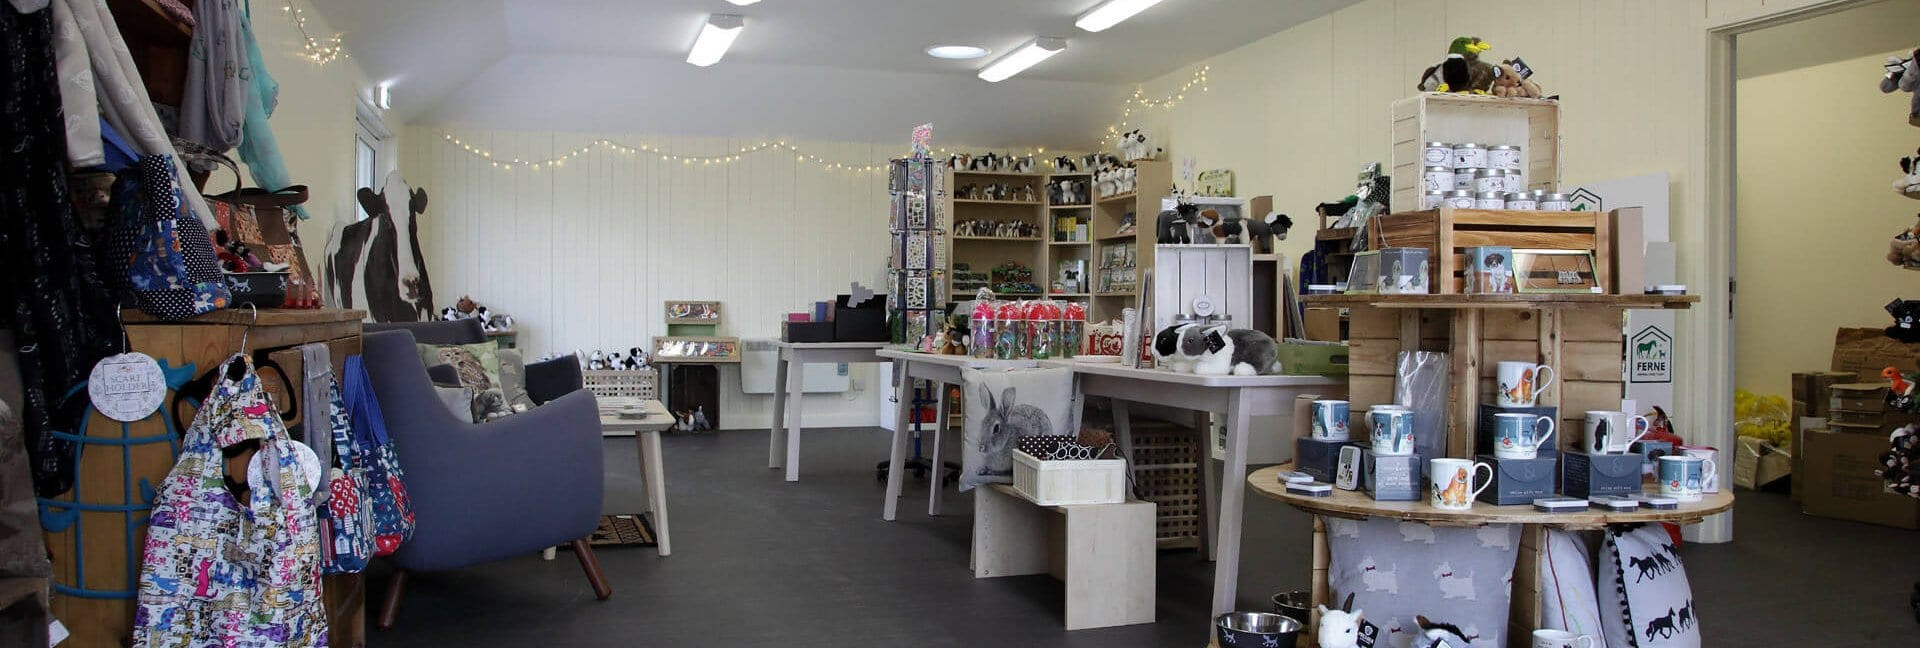 Ferne Animal Sanctuary Shop Interior